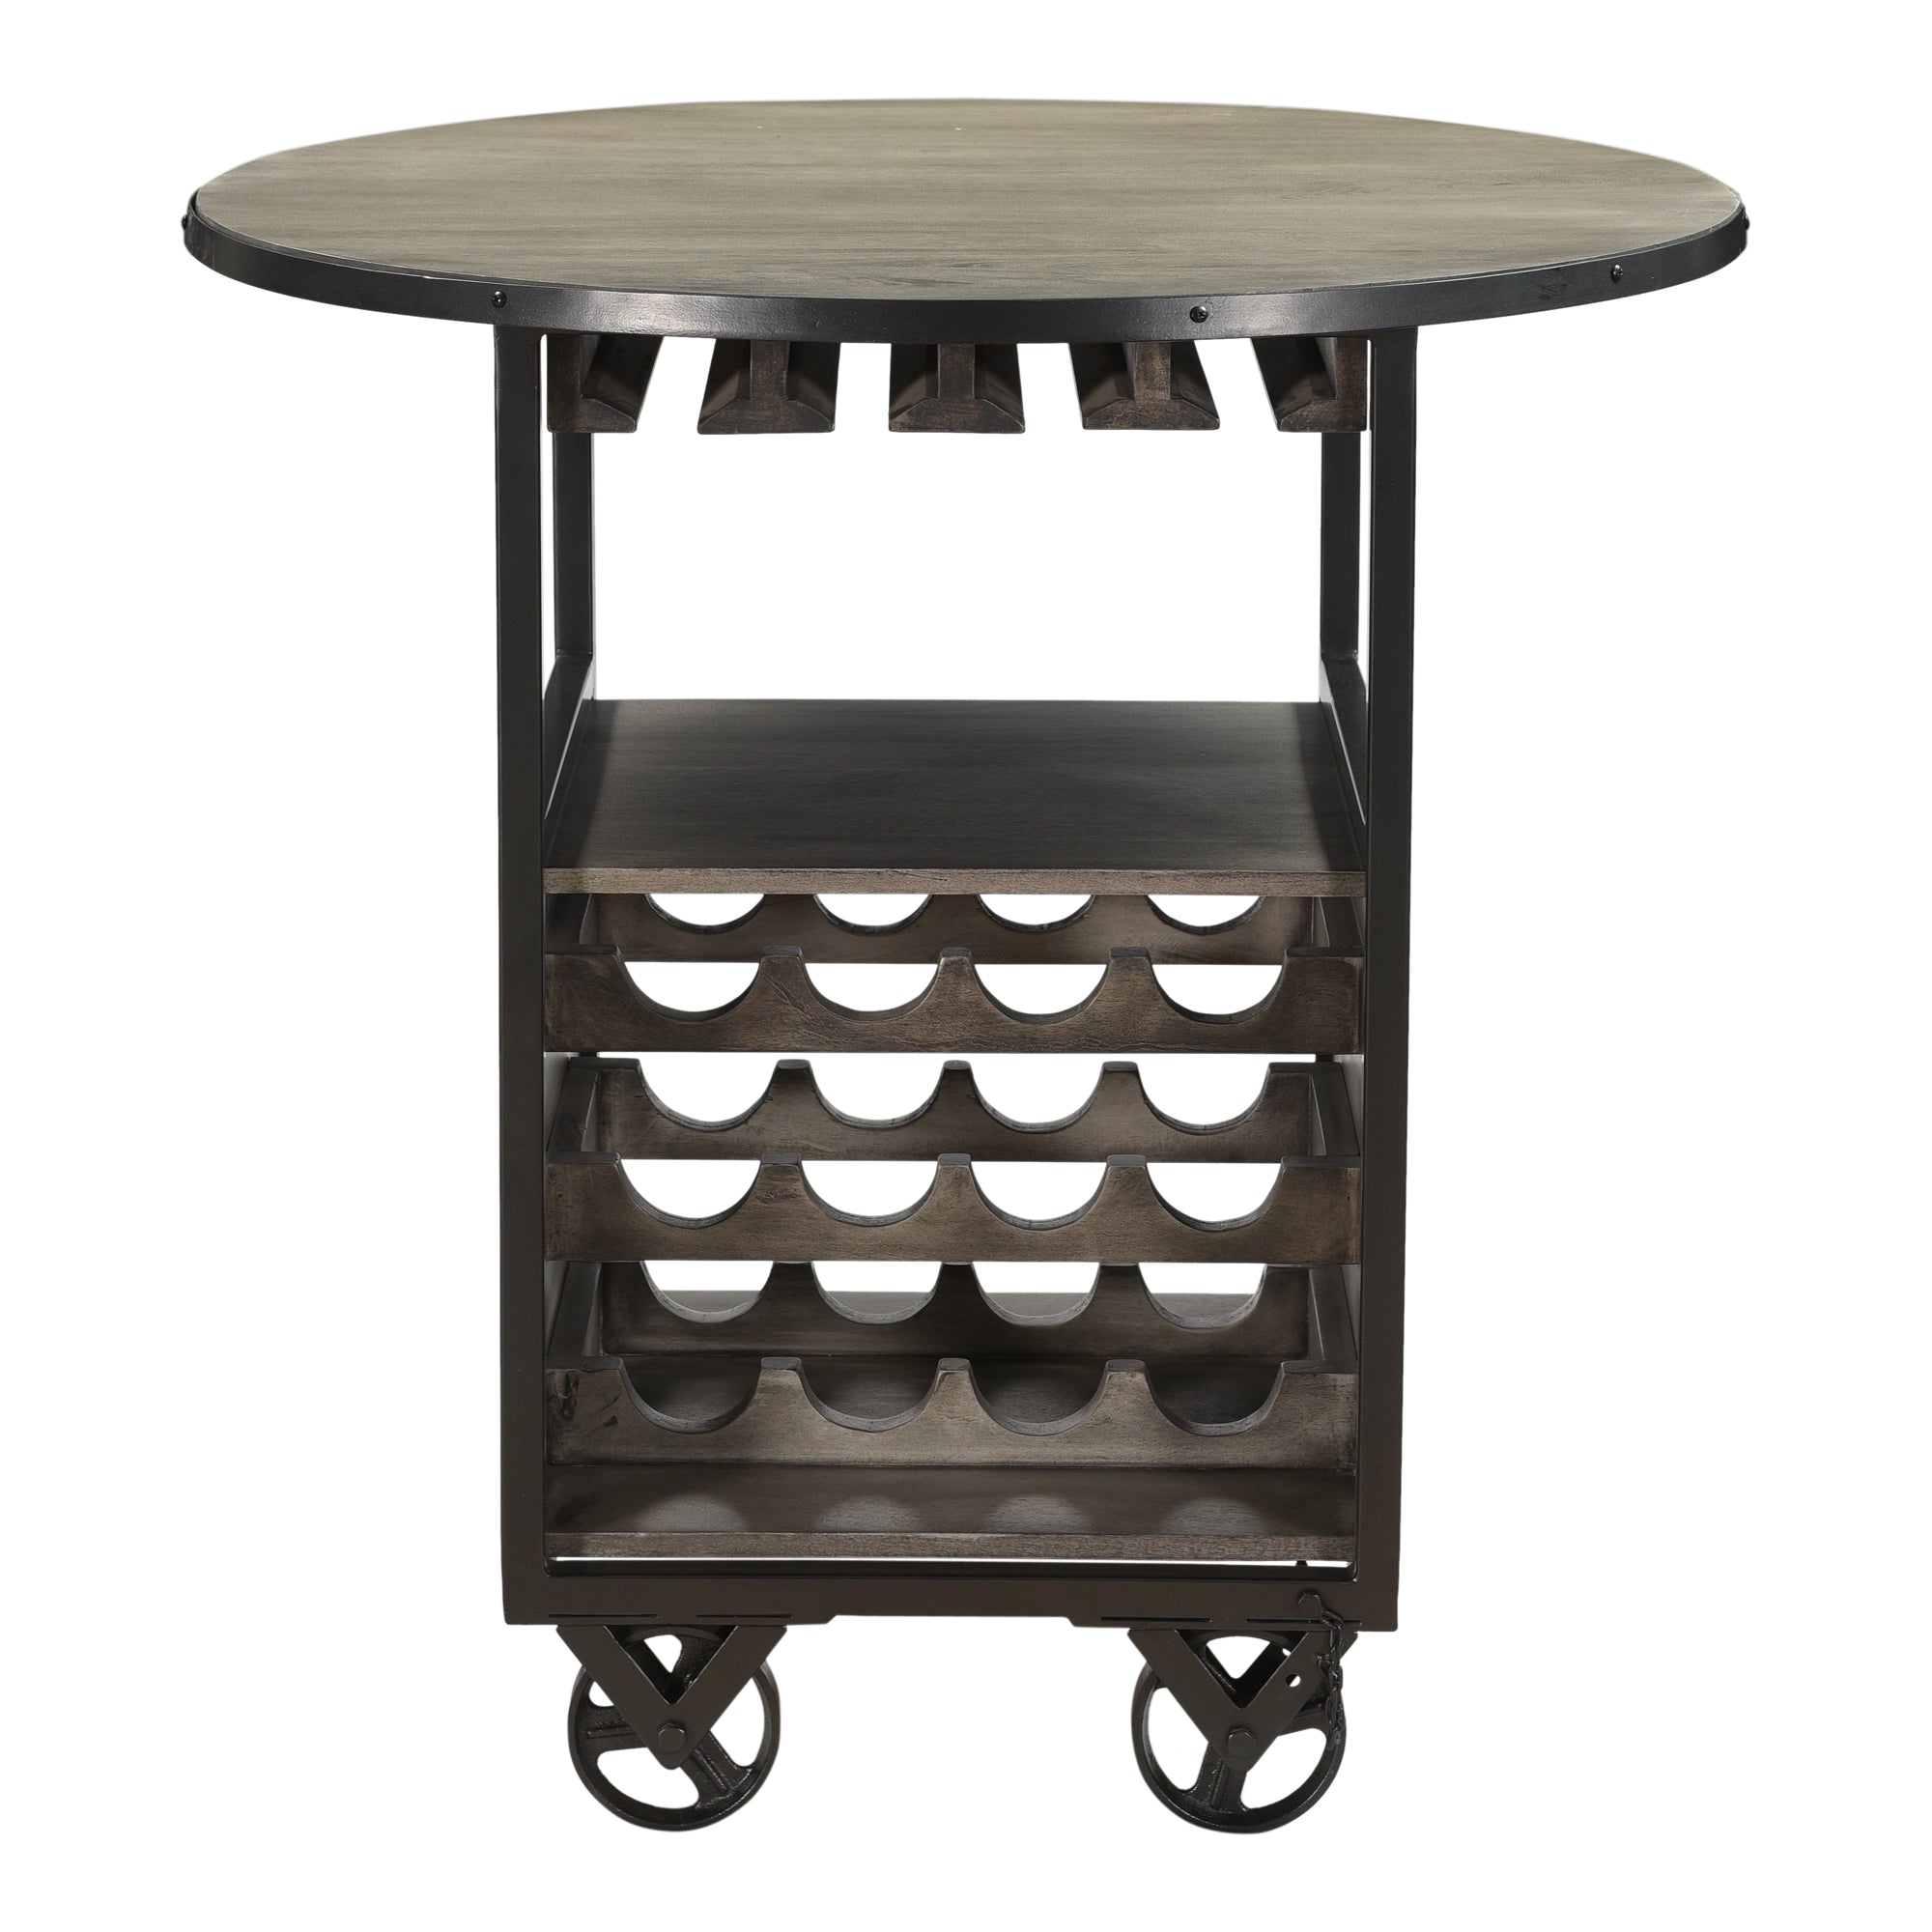 Julep bar cart, grey - Tops-Dress